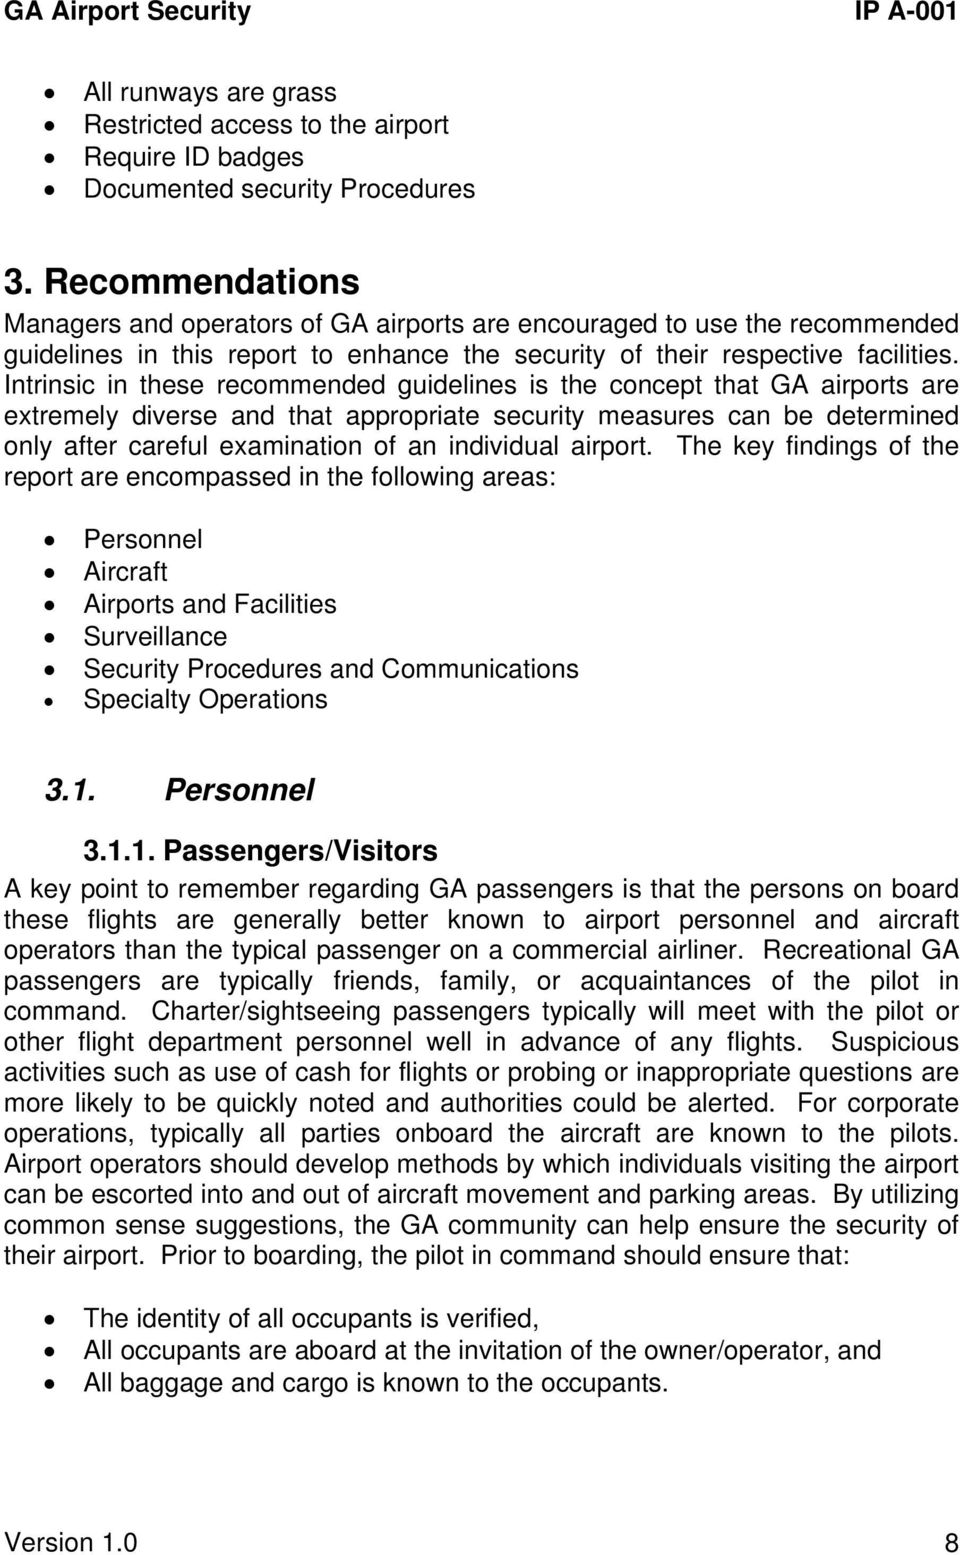 Intrinsic in these recommended guidelines is the concept that GA airports are extremely diverse and that appropriate security measures can be determined only after careful examination of an